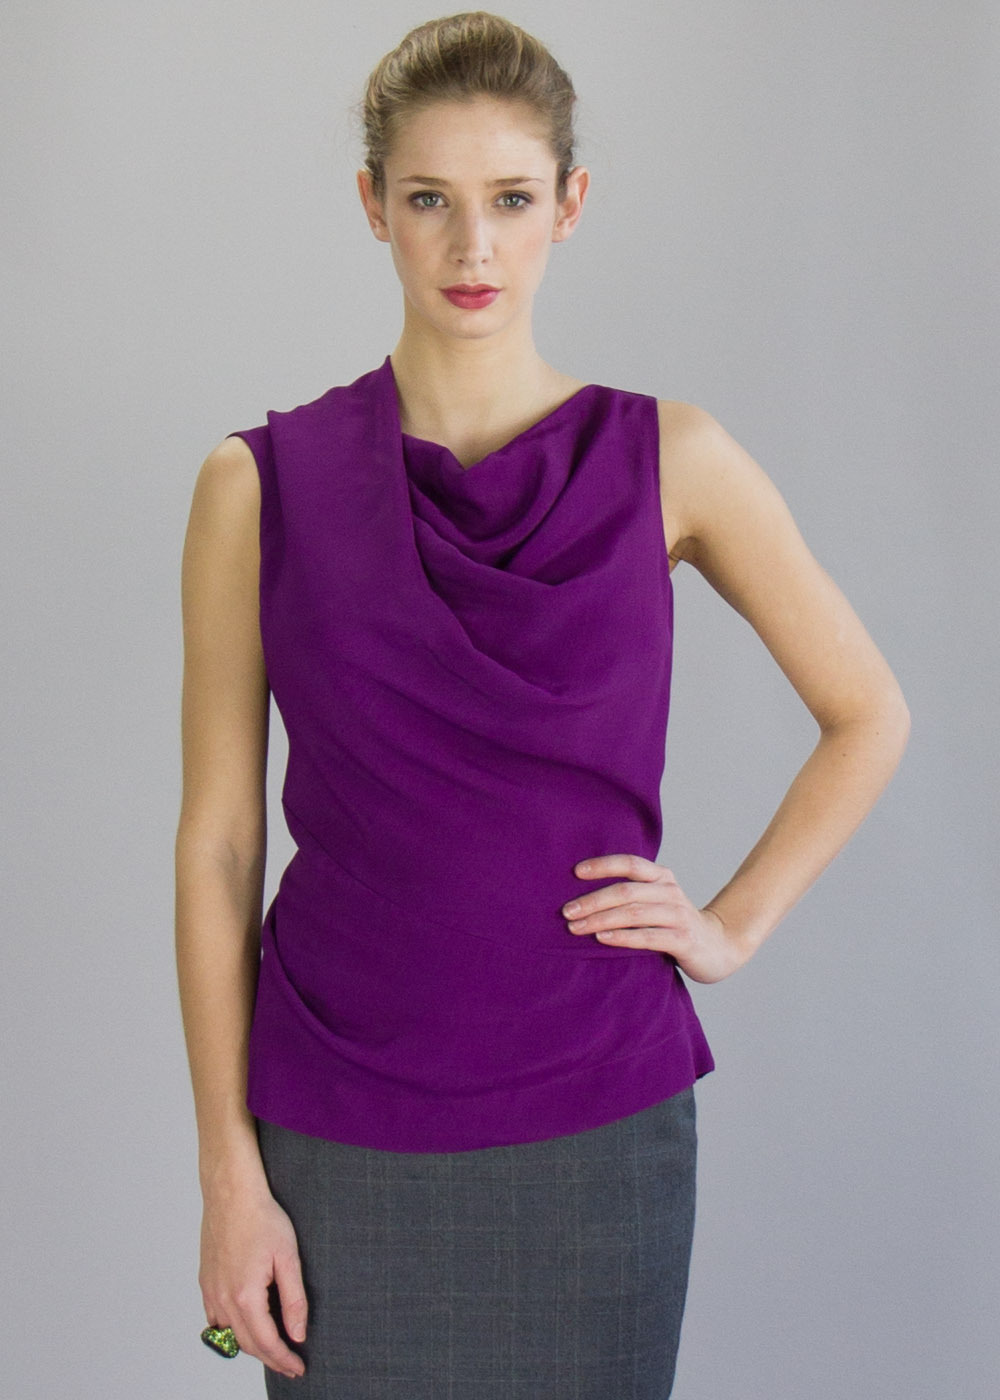 Purple Alto Top - neckline: cowl/draped neck; pattern: plain; sleeve style: sleeveless; bust detail: subtle bust detail; predominant colour: magenta; occasions: evening; length: standard; style: top; fibres: viscose/rayon - 100%; fit: body skimming; sleeve length: sleeveless; texture group: silky - light; pattern type: fabric; season: a/w 2013; wardrobe: event